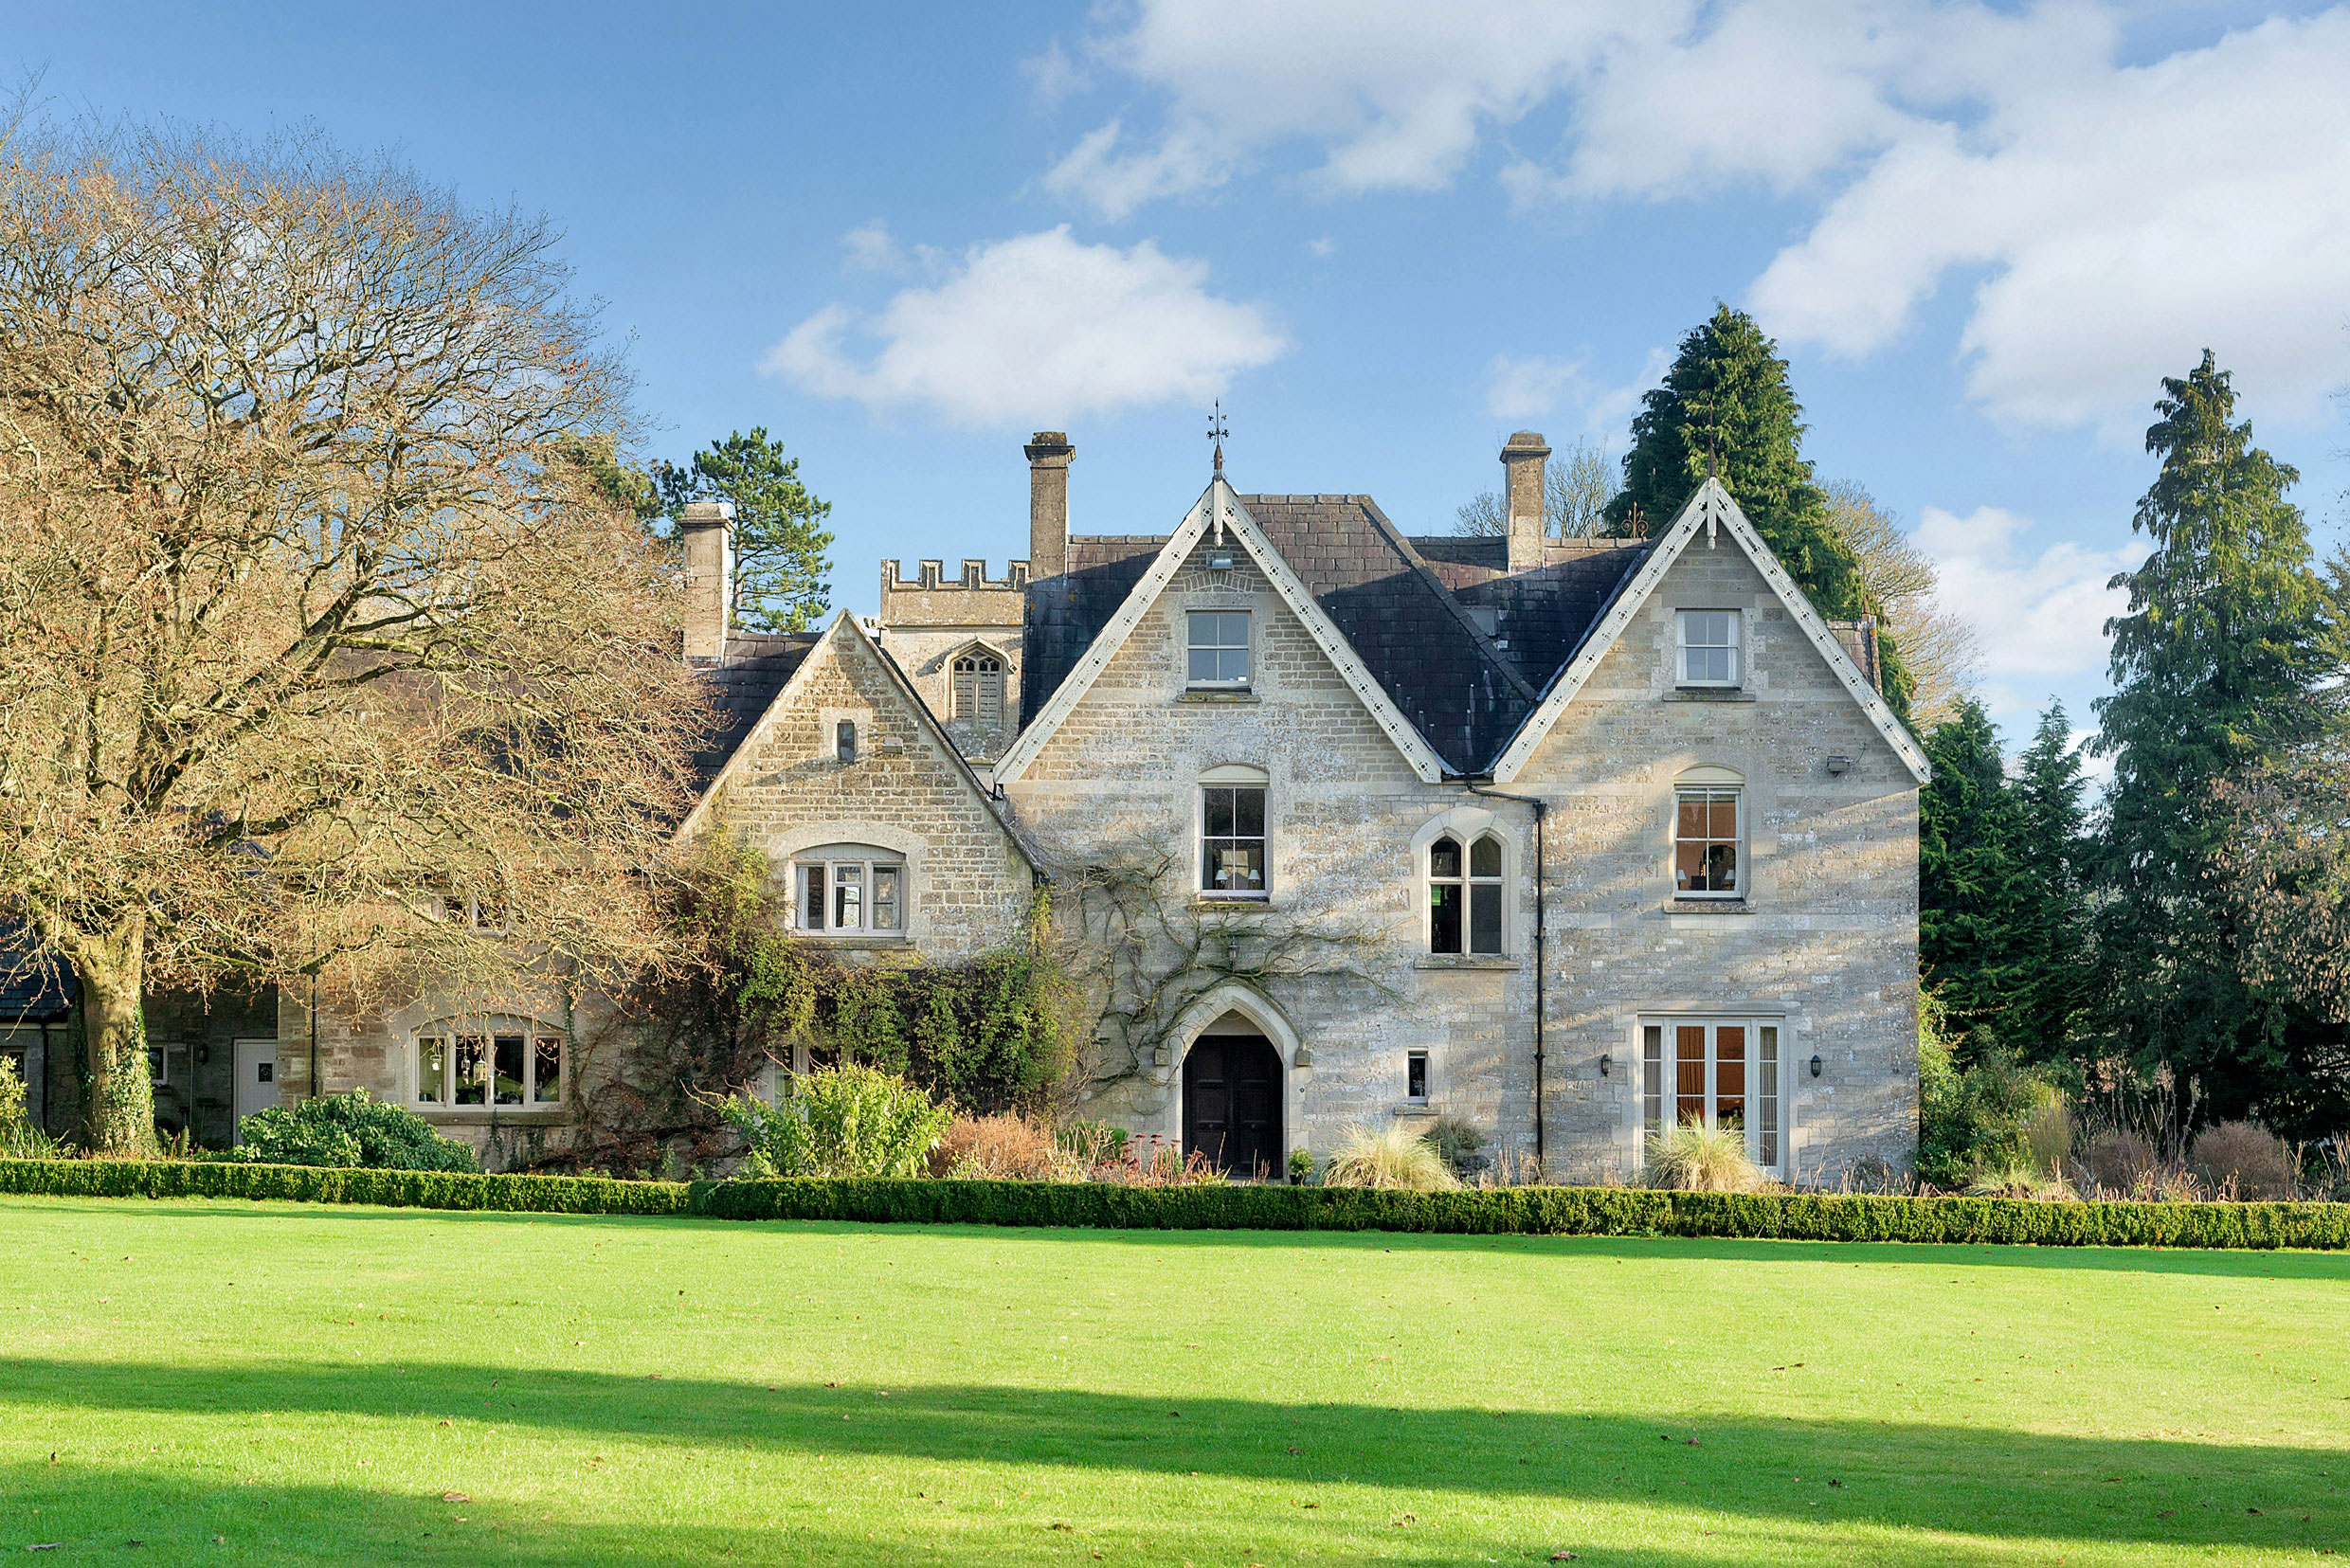 The Cotswolds country house once owned by the Horlicks millionaires, on sale for the first time since the 1980s